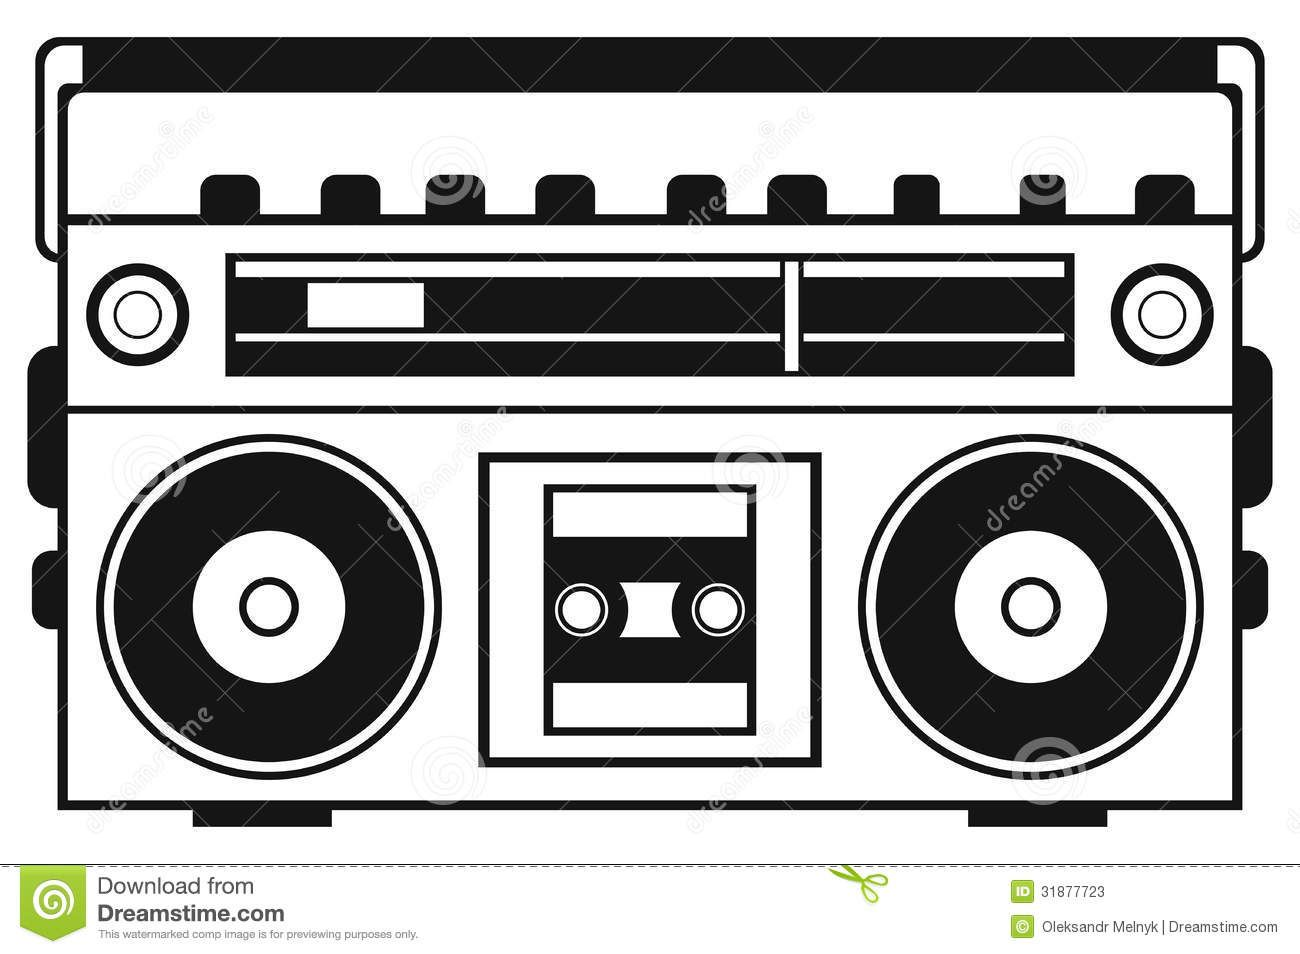 80 s boombox clipart graphic free stock Boombox Clipart Repinlikeview Pic | PTA in 2019 | Boombox, Drawings, Art graphic free stock